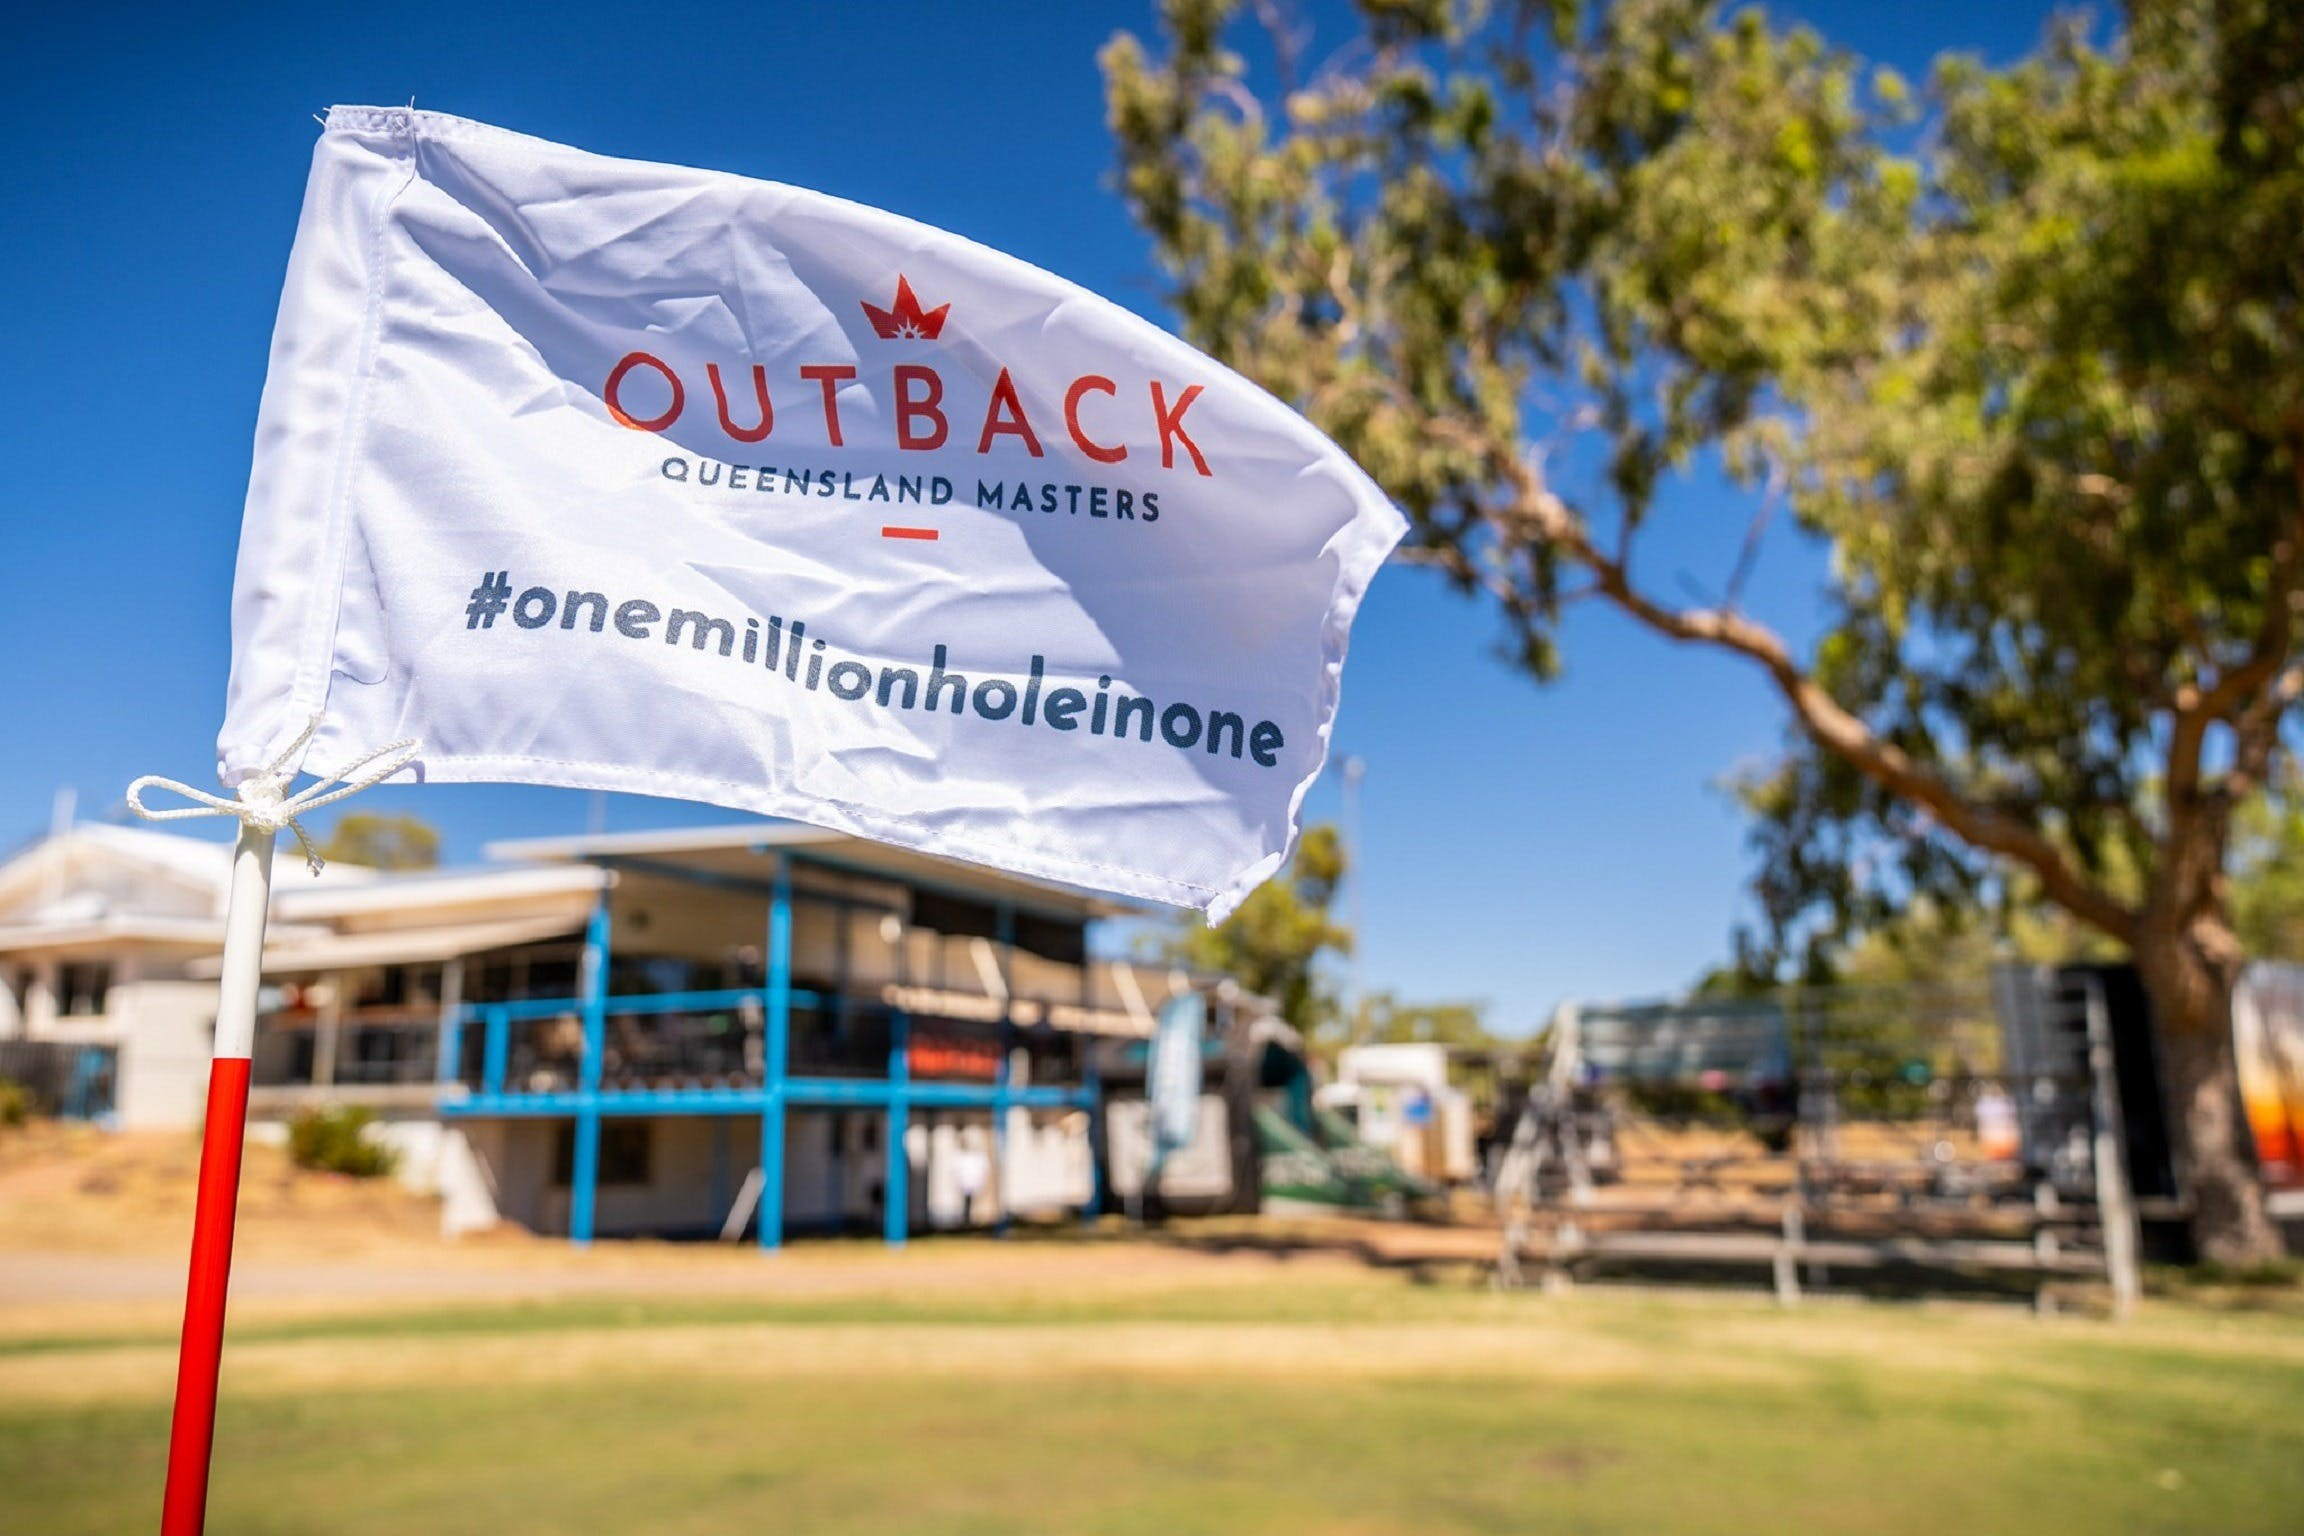 Outback Queensland Masters Charleville Leg 2021 - QLD Tourism